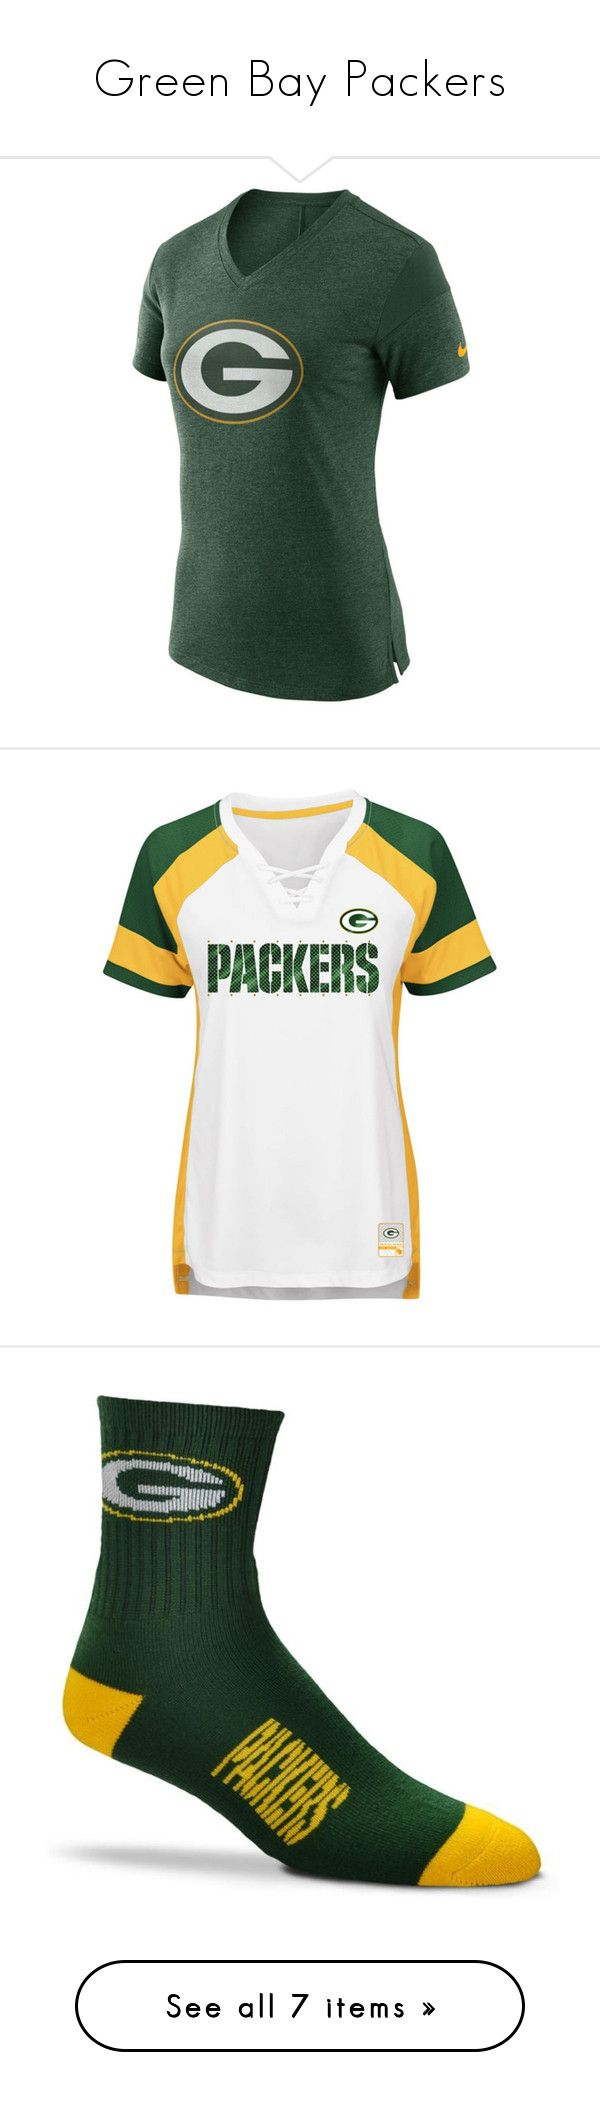 """""""Green Bay Packers"""" by mary-rose-klinger ❤ liked on Polyvore featuring accessories, hats, logo hats, nfl hats, nfl logo hat, green bay packers hat, bills hat, green, adjustable baseball caps and embroidered baseball hats"""